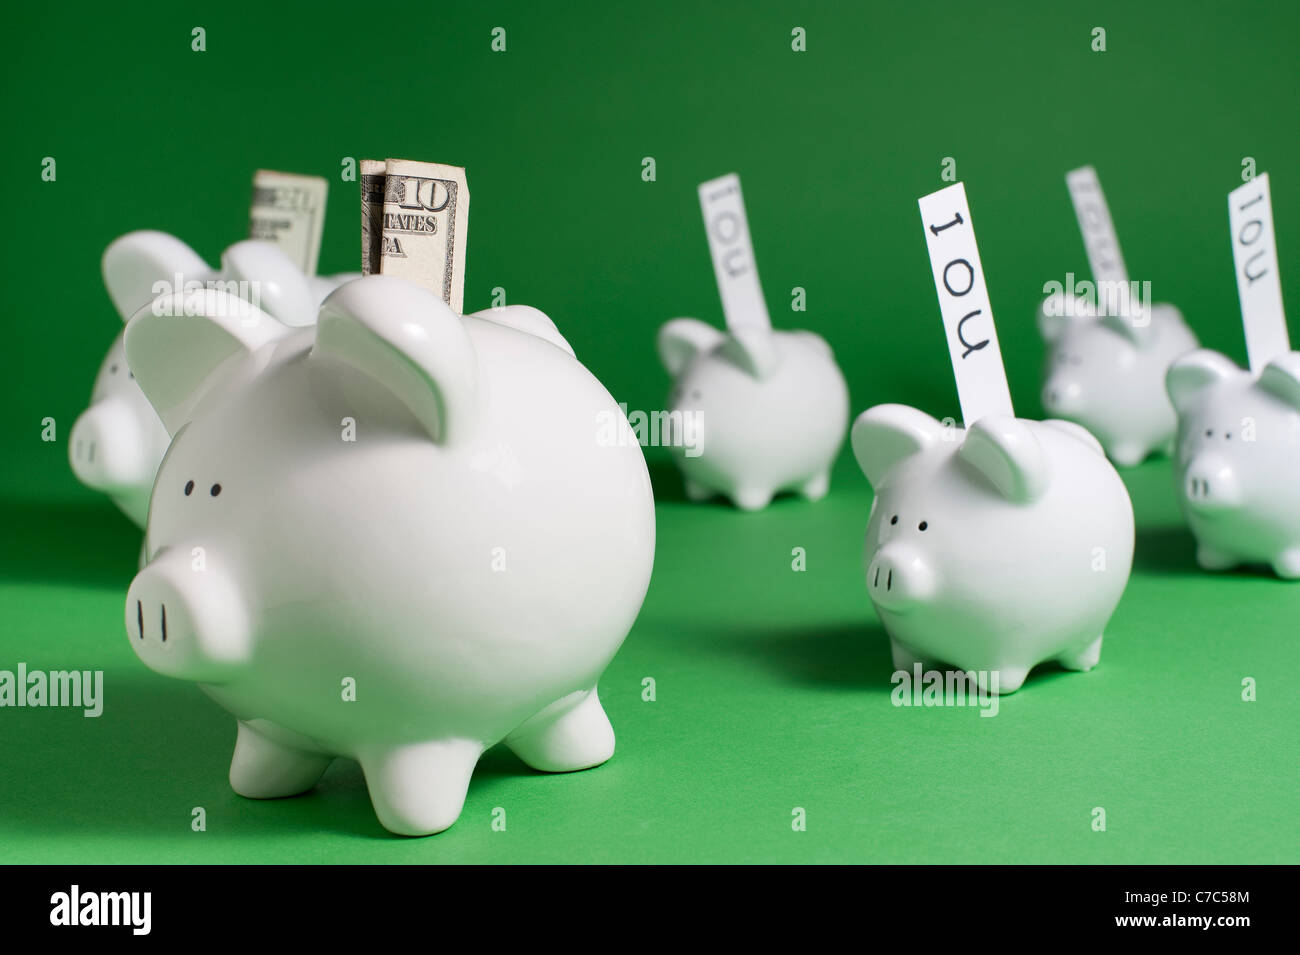 Group of pigs with money and IOU's coming out of coin slots - Stock Image